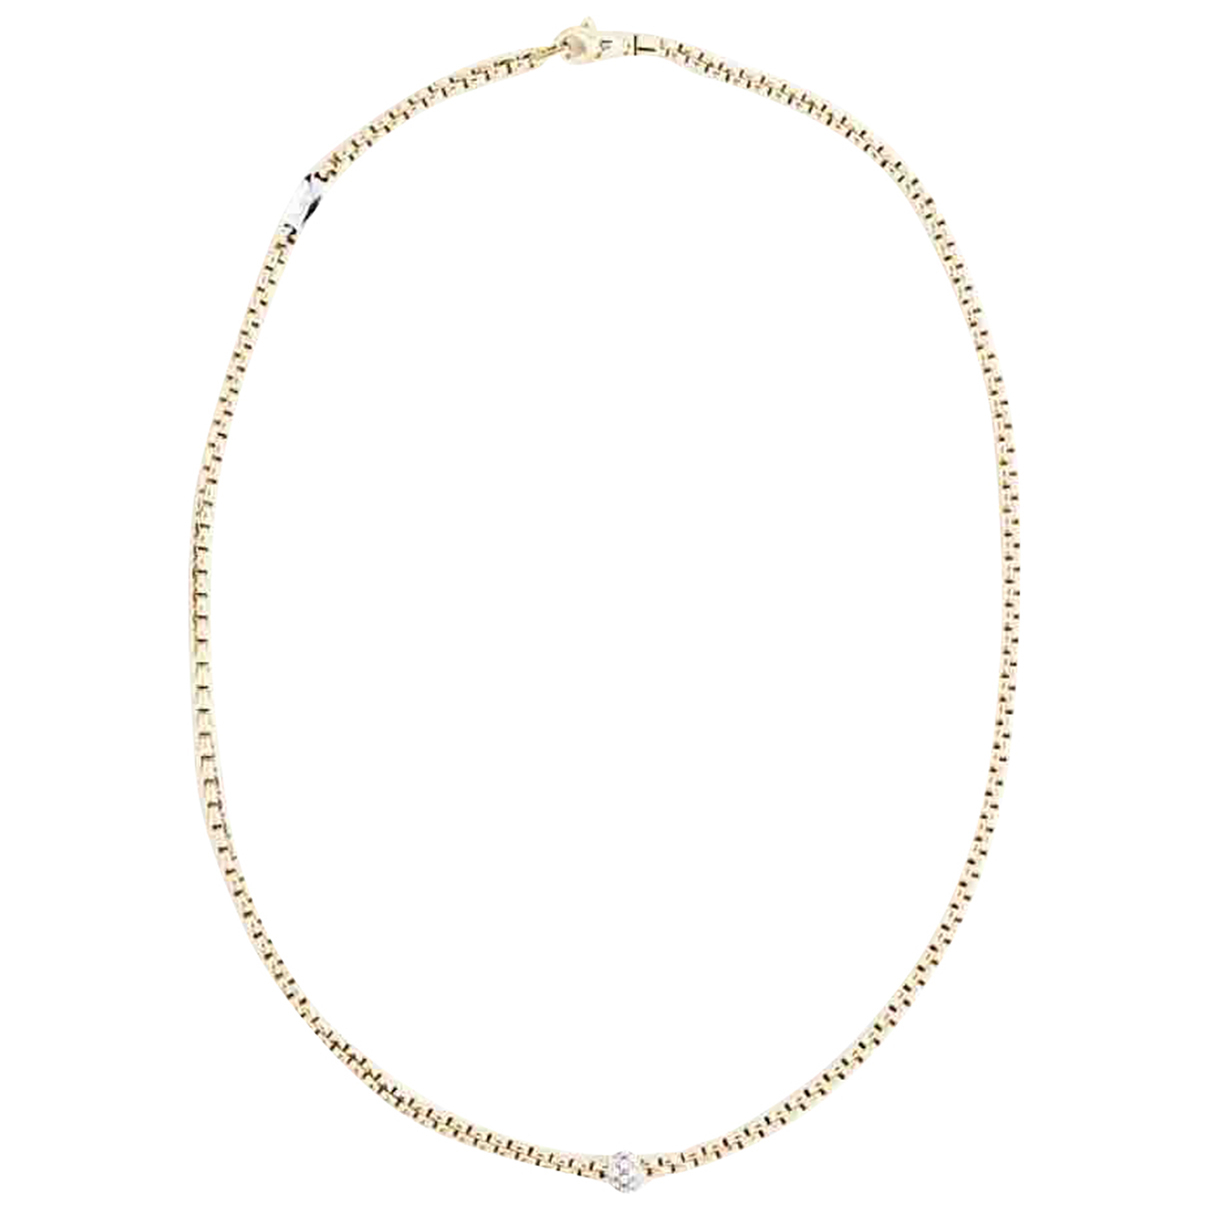 Fope \N Kette in  Gold Gelbgold